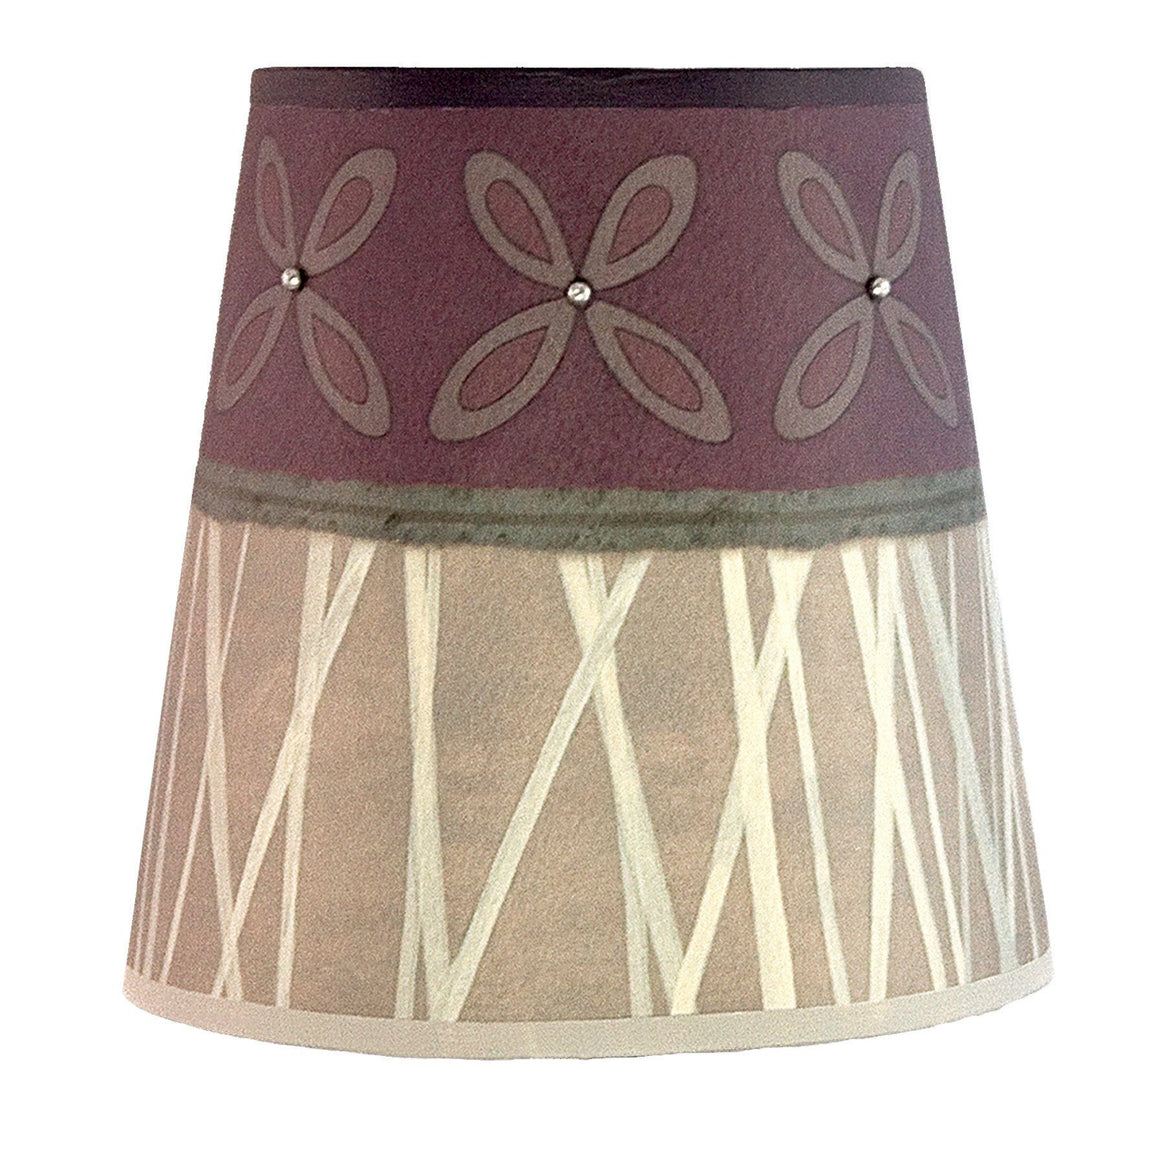 Small Drum Lamp Shade in Amethyst